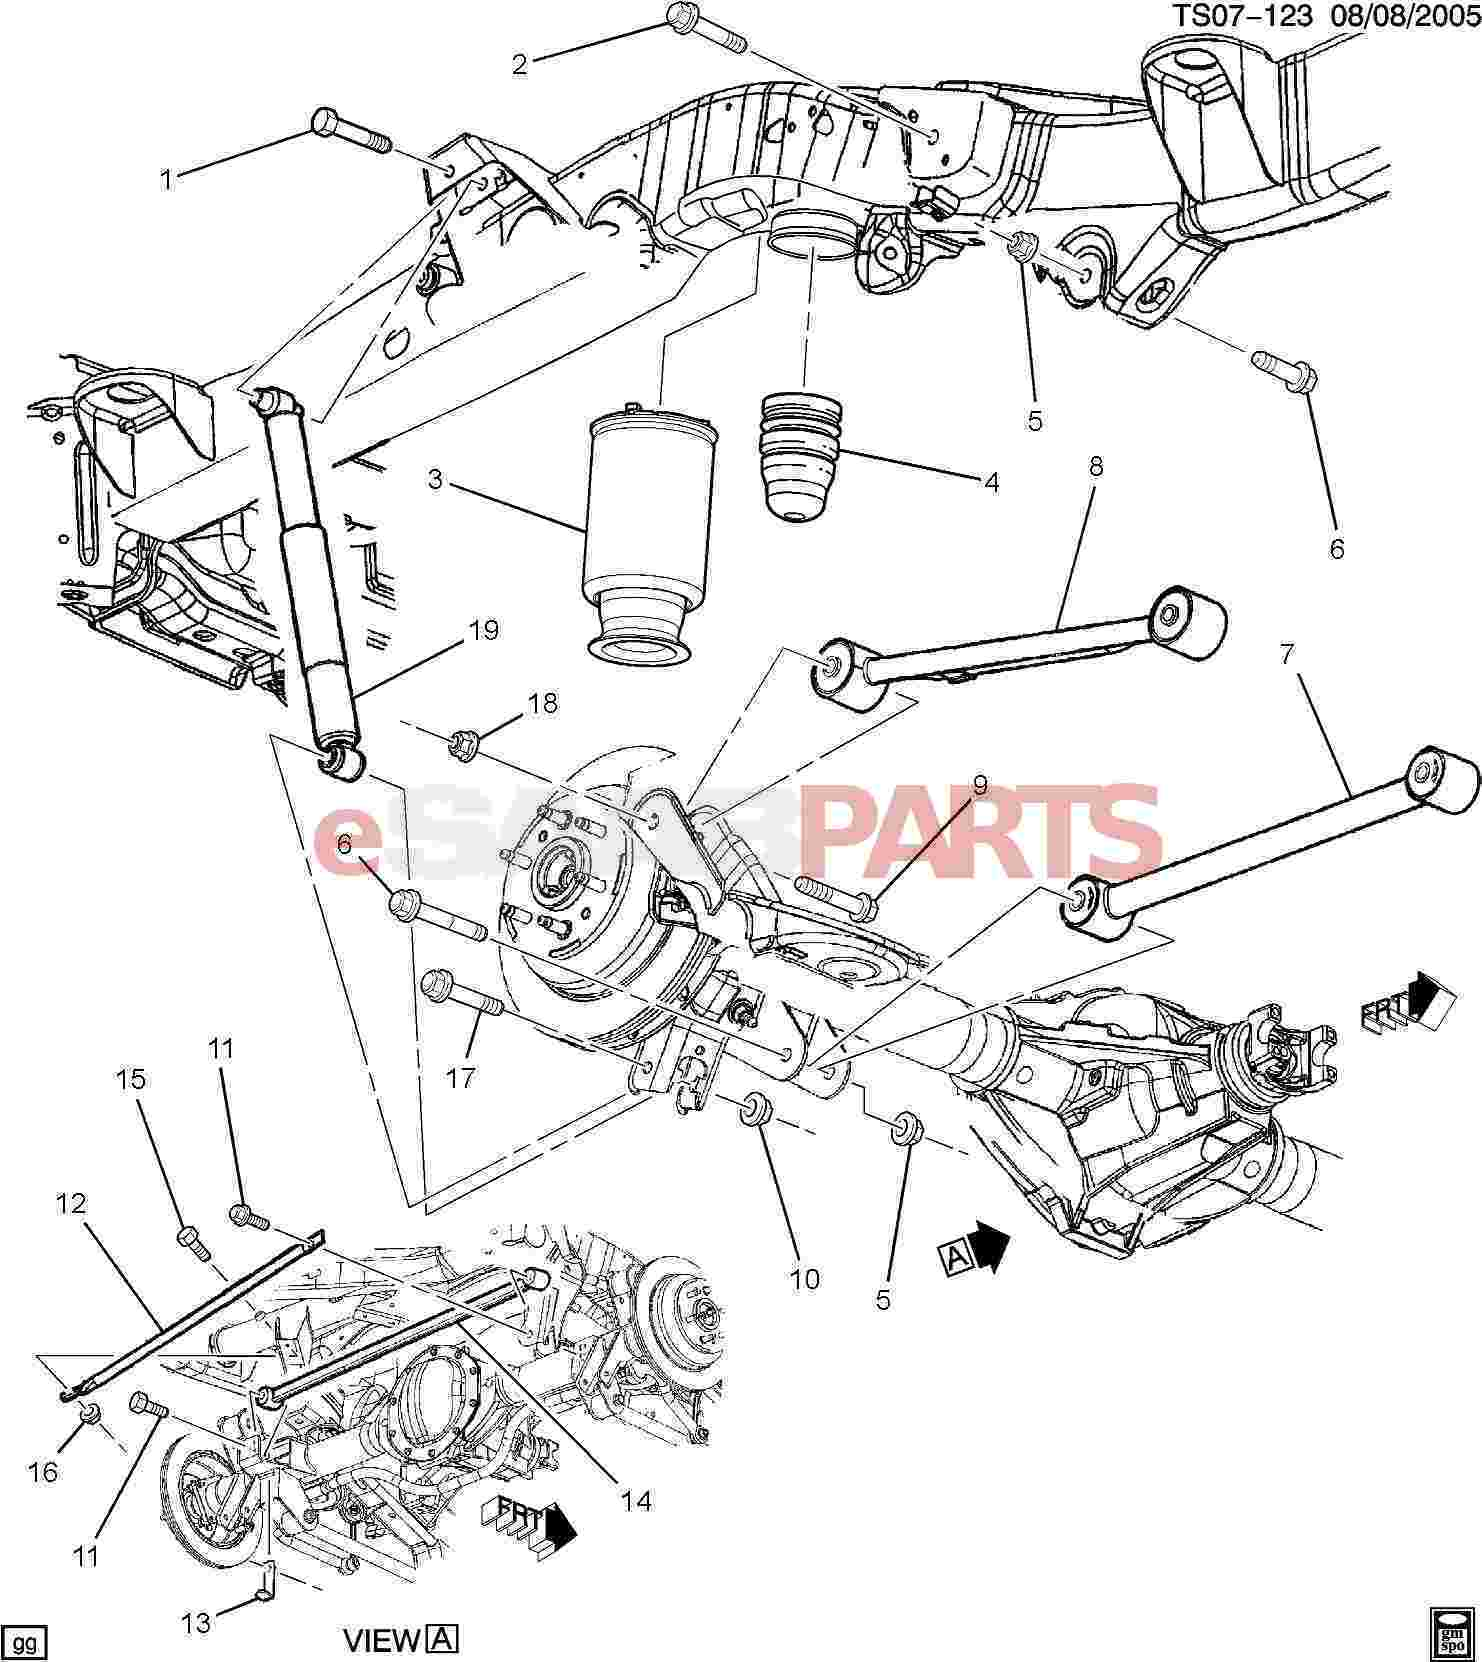 1970 cutlass engine wiring diagram